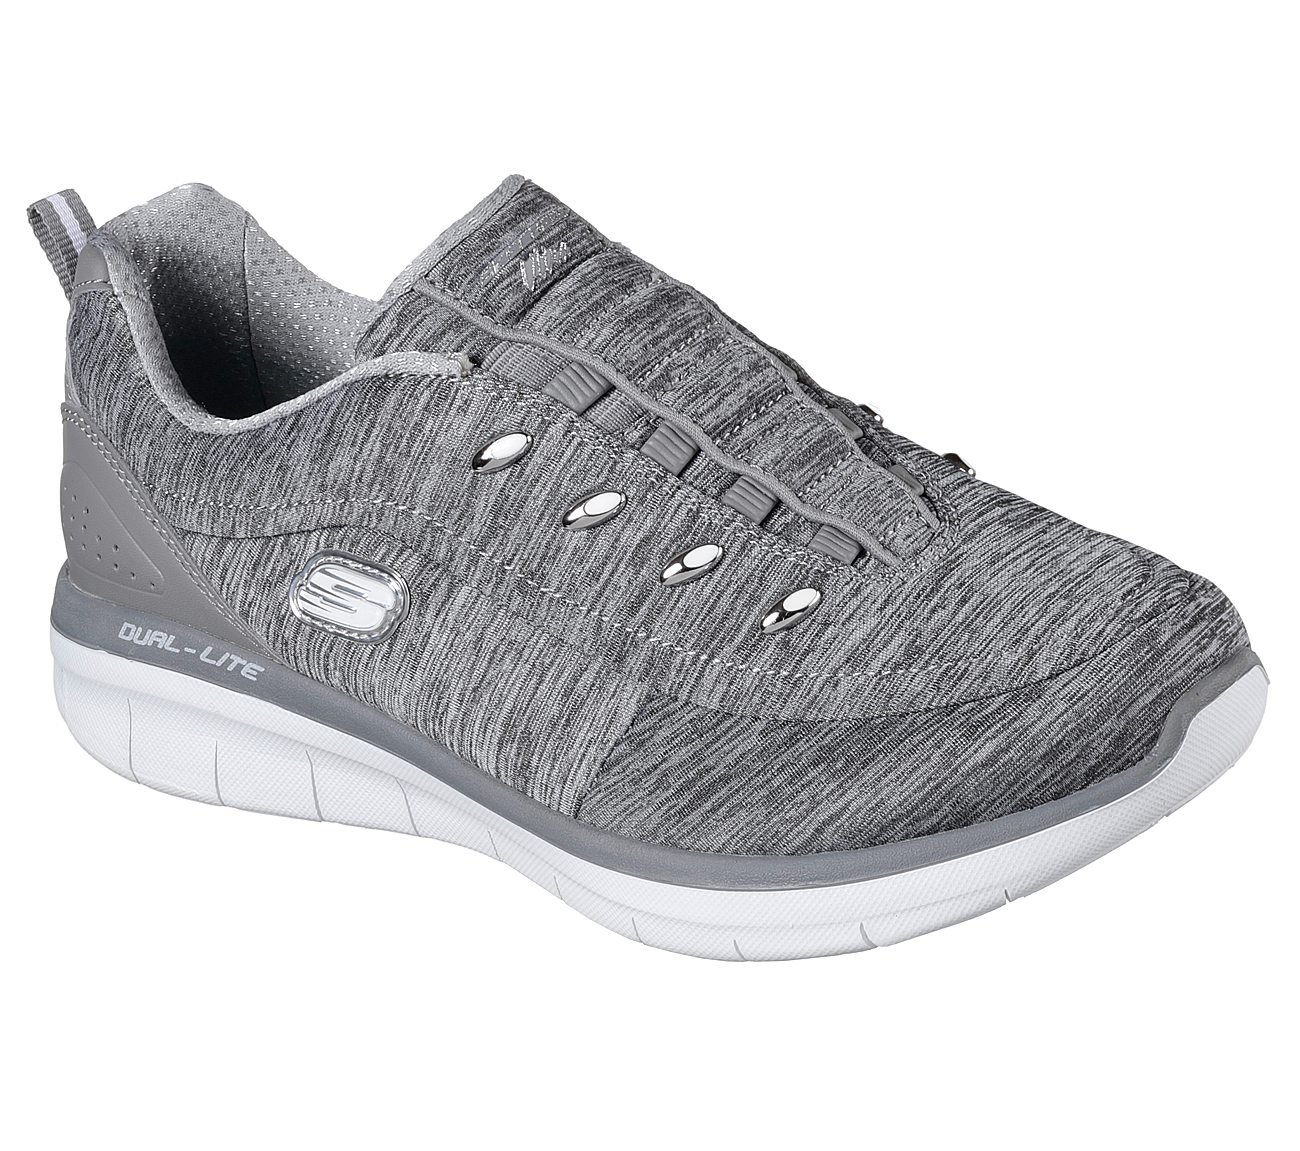 Skechers Synergy 2.0 Scouted Womens Slip On Sneakers Gray 7.5 W